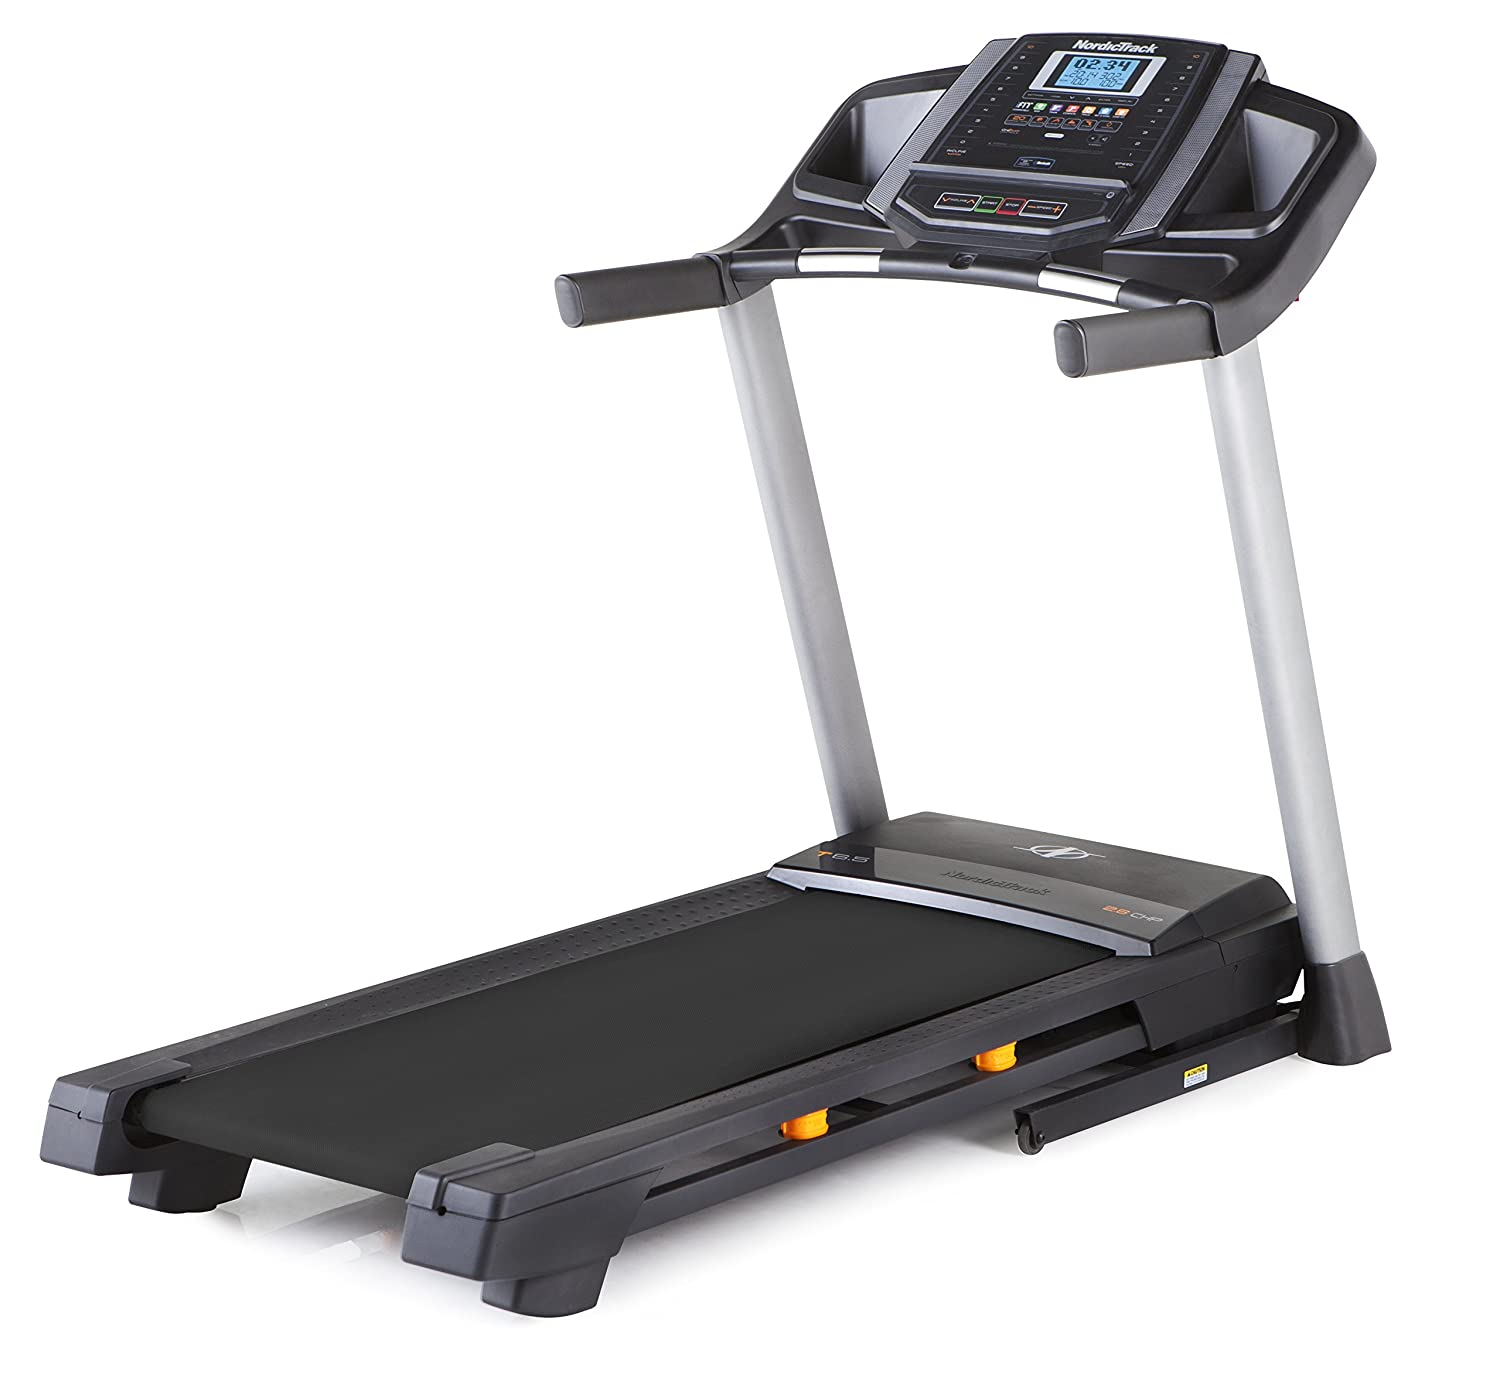 Electric treadmill is the best home simulator